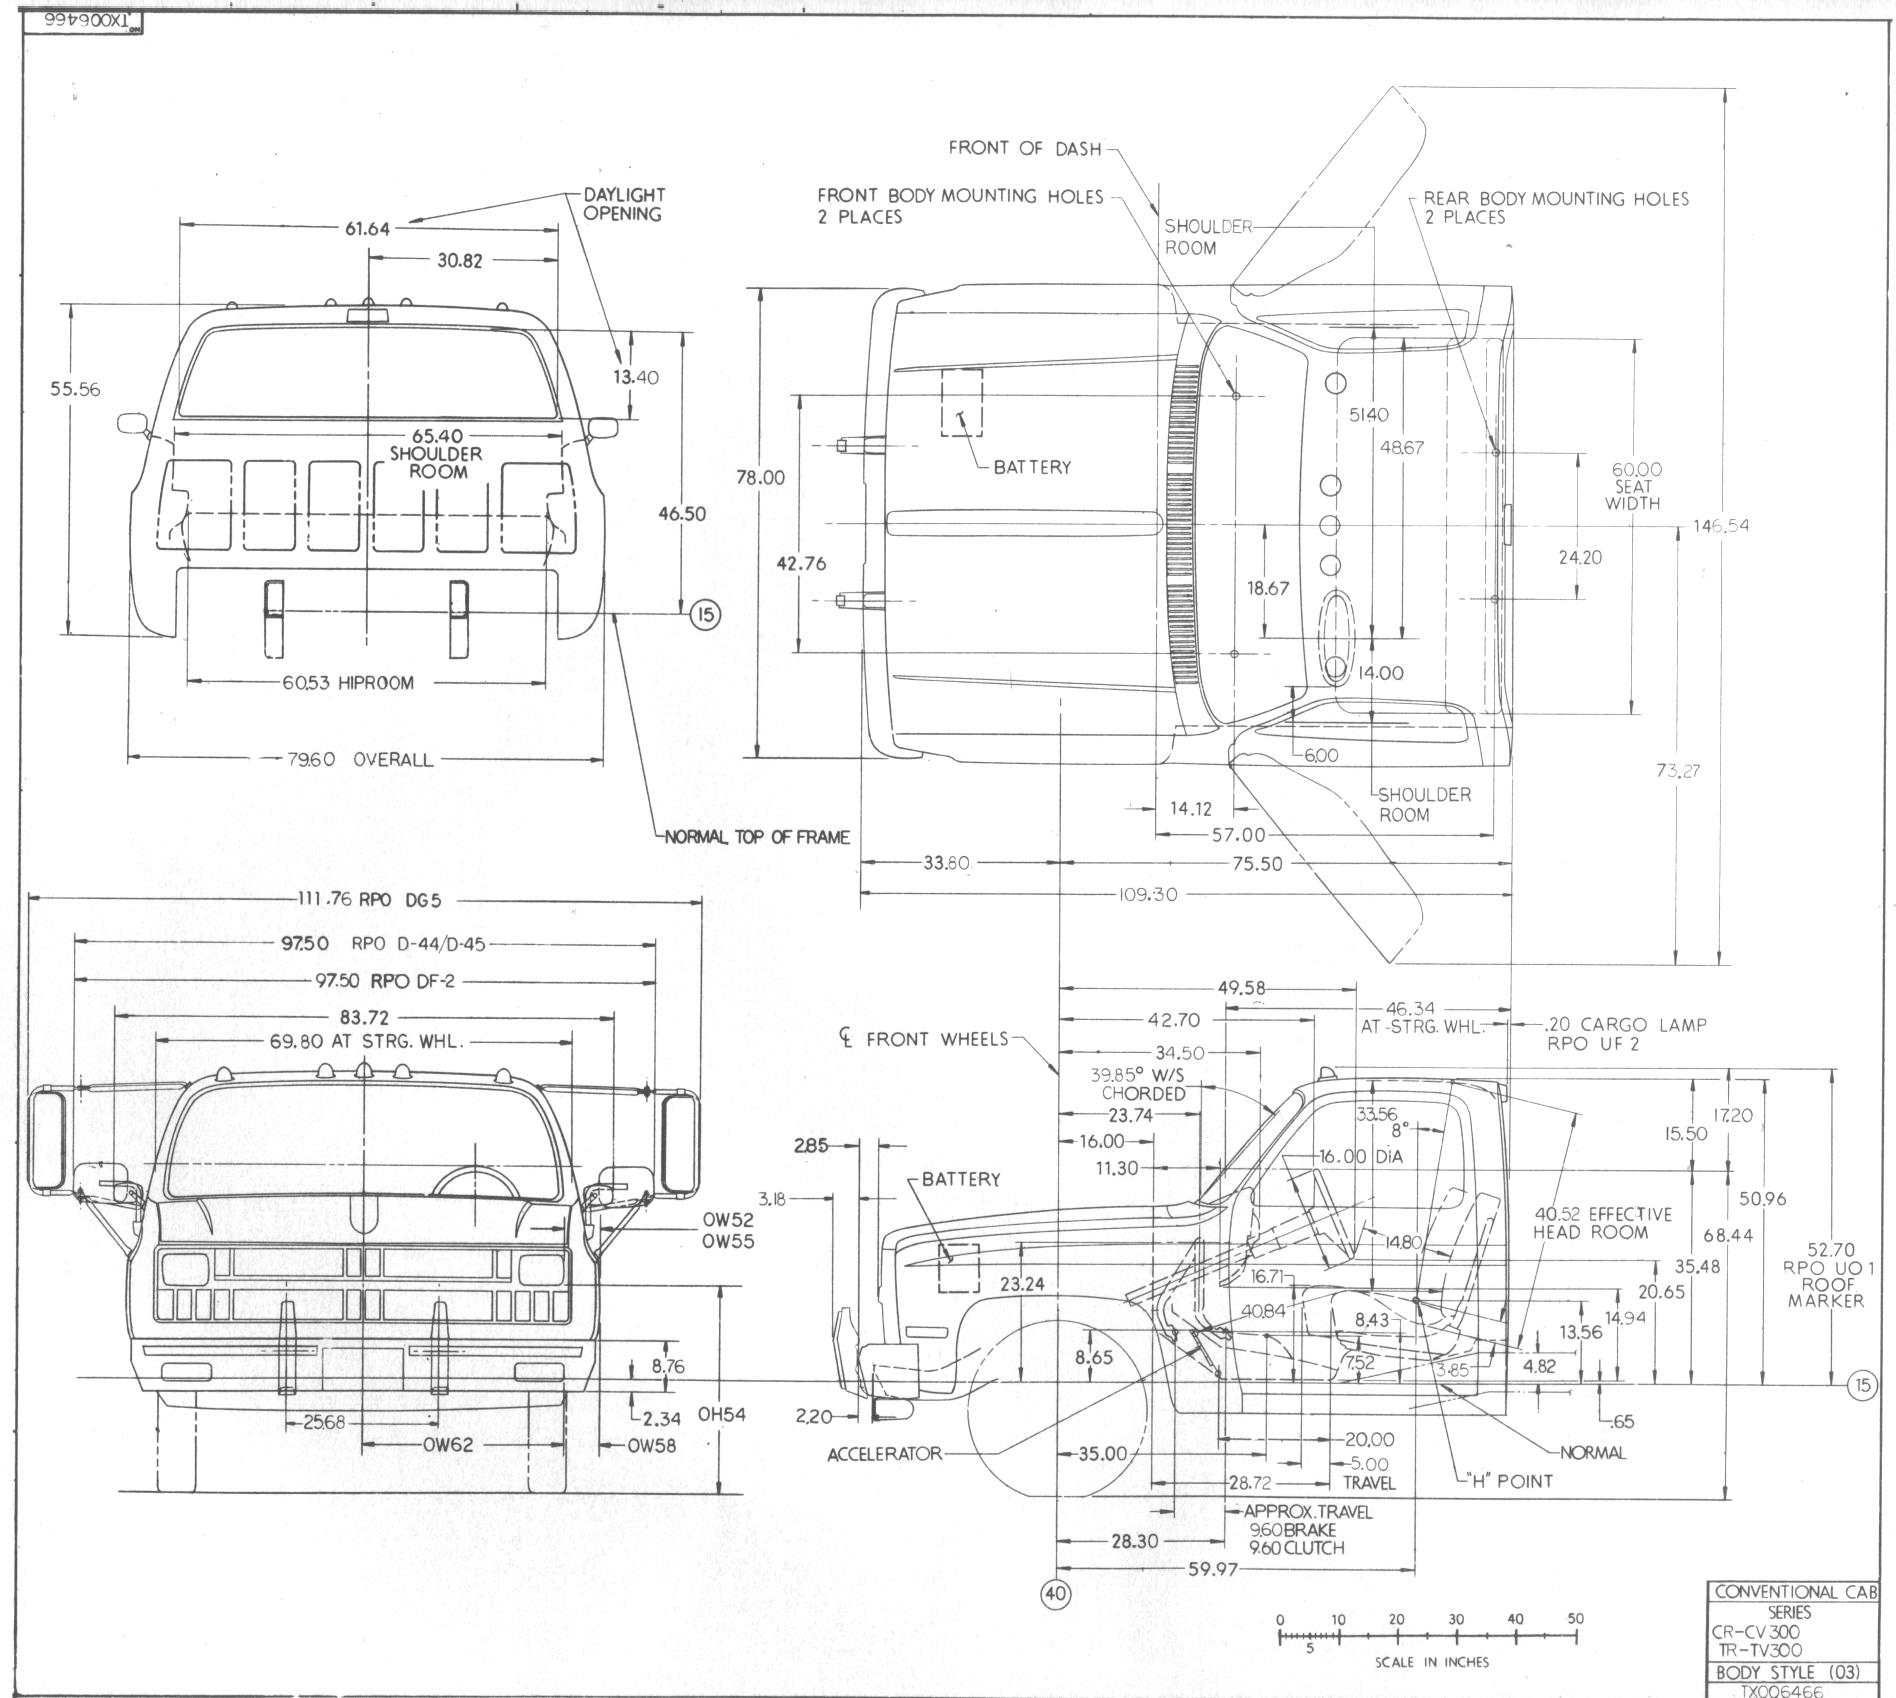 1990 Chevy Blazer Frame Diagram - Schematic Wiring Diagram •